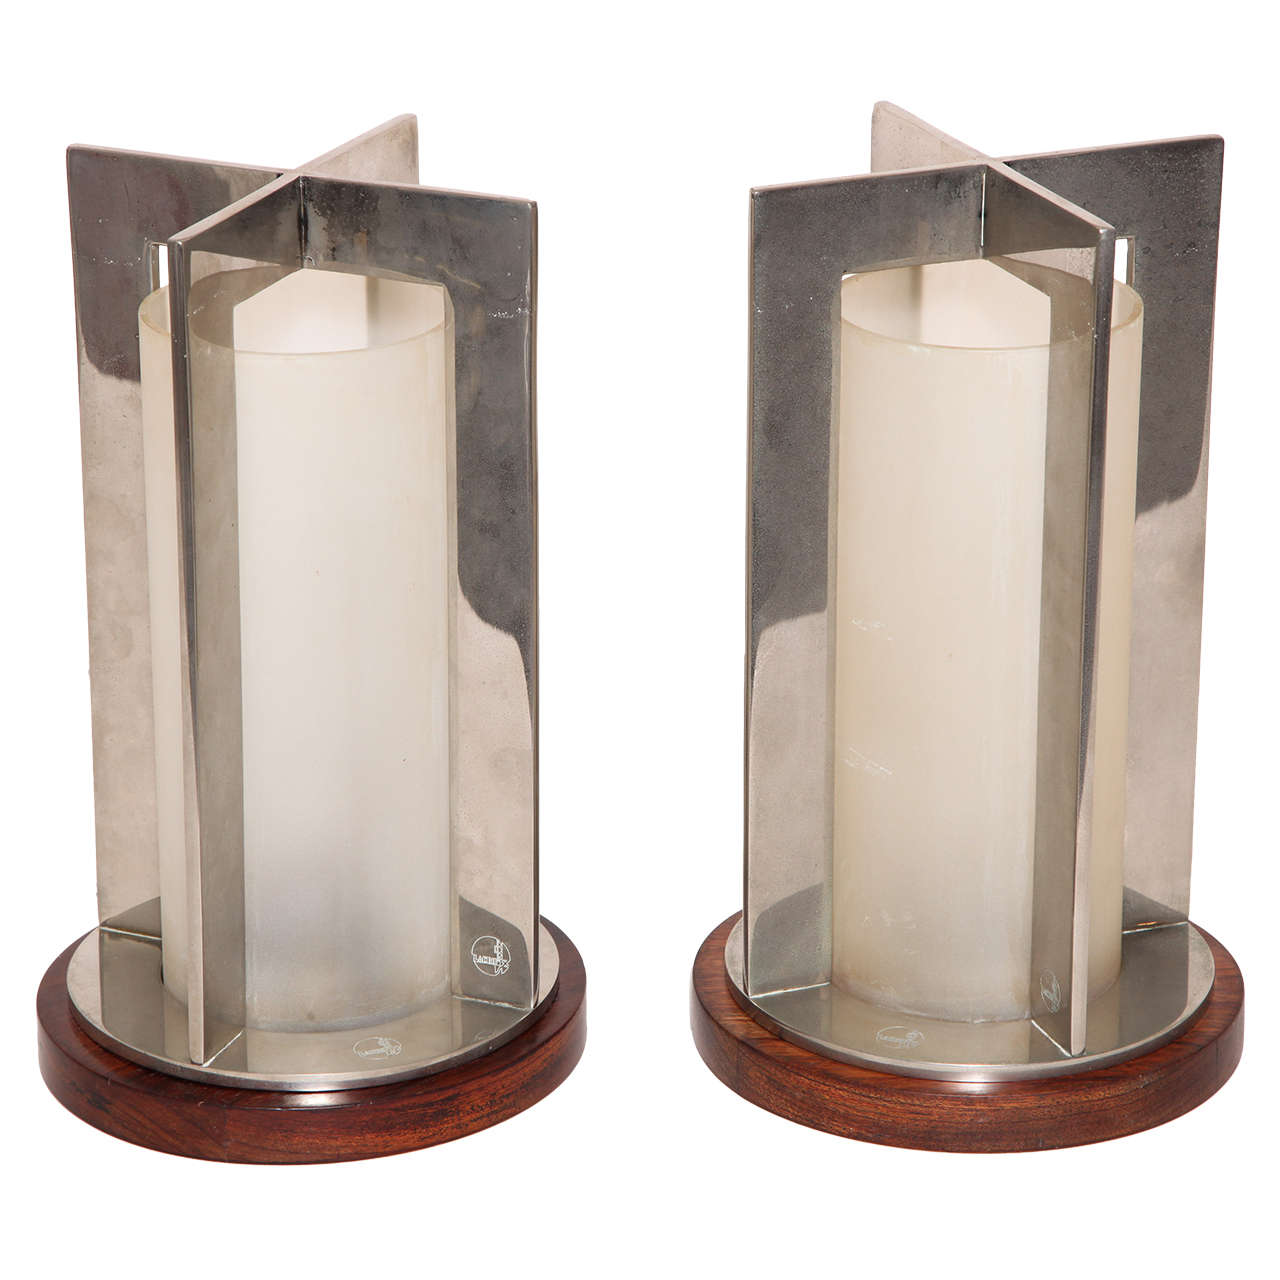 Boris jean lacroix pair of french art deco nickel and frosted glass table lamps for sale at 1stdibs Frosted glass furniture